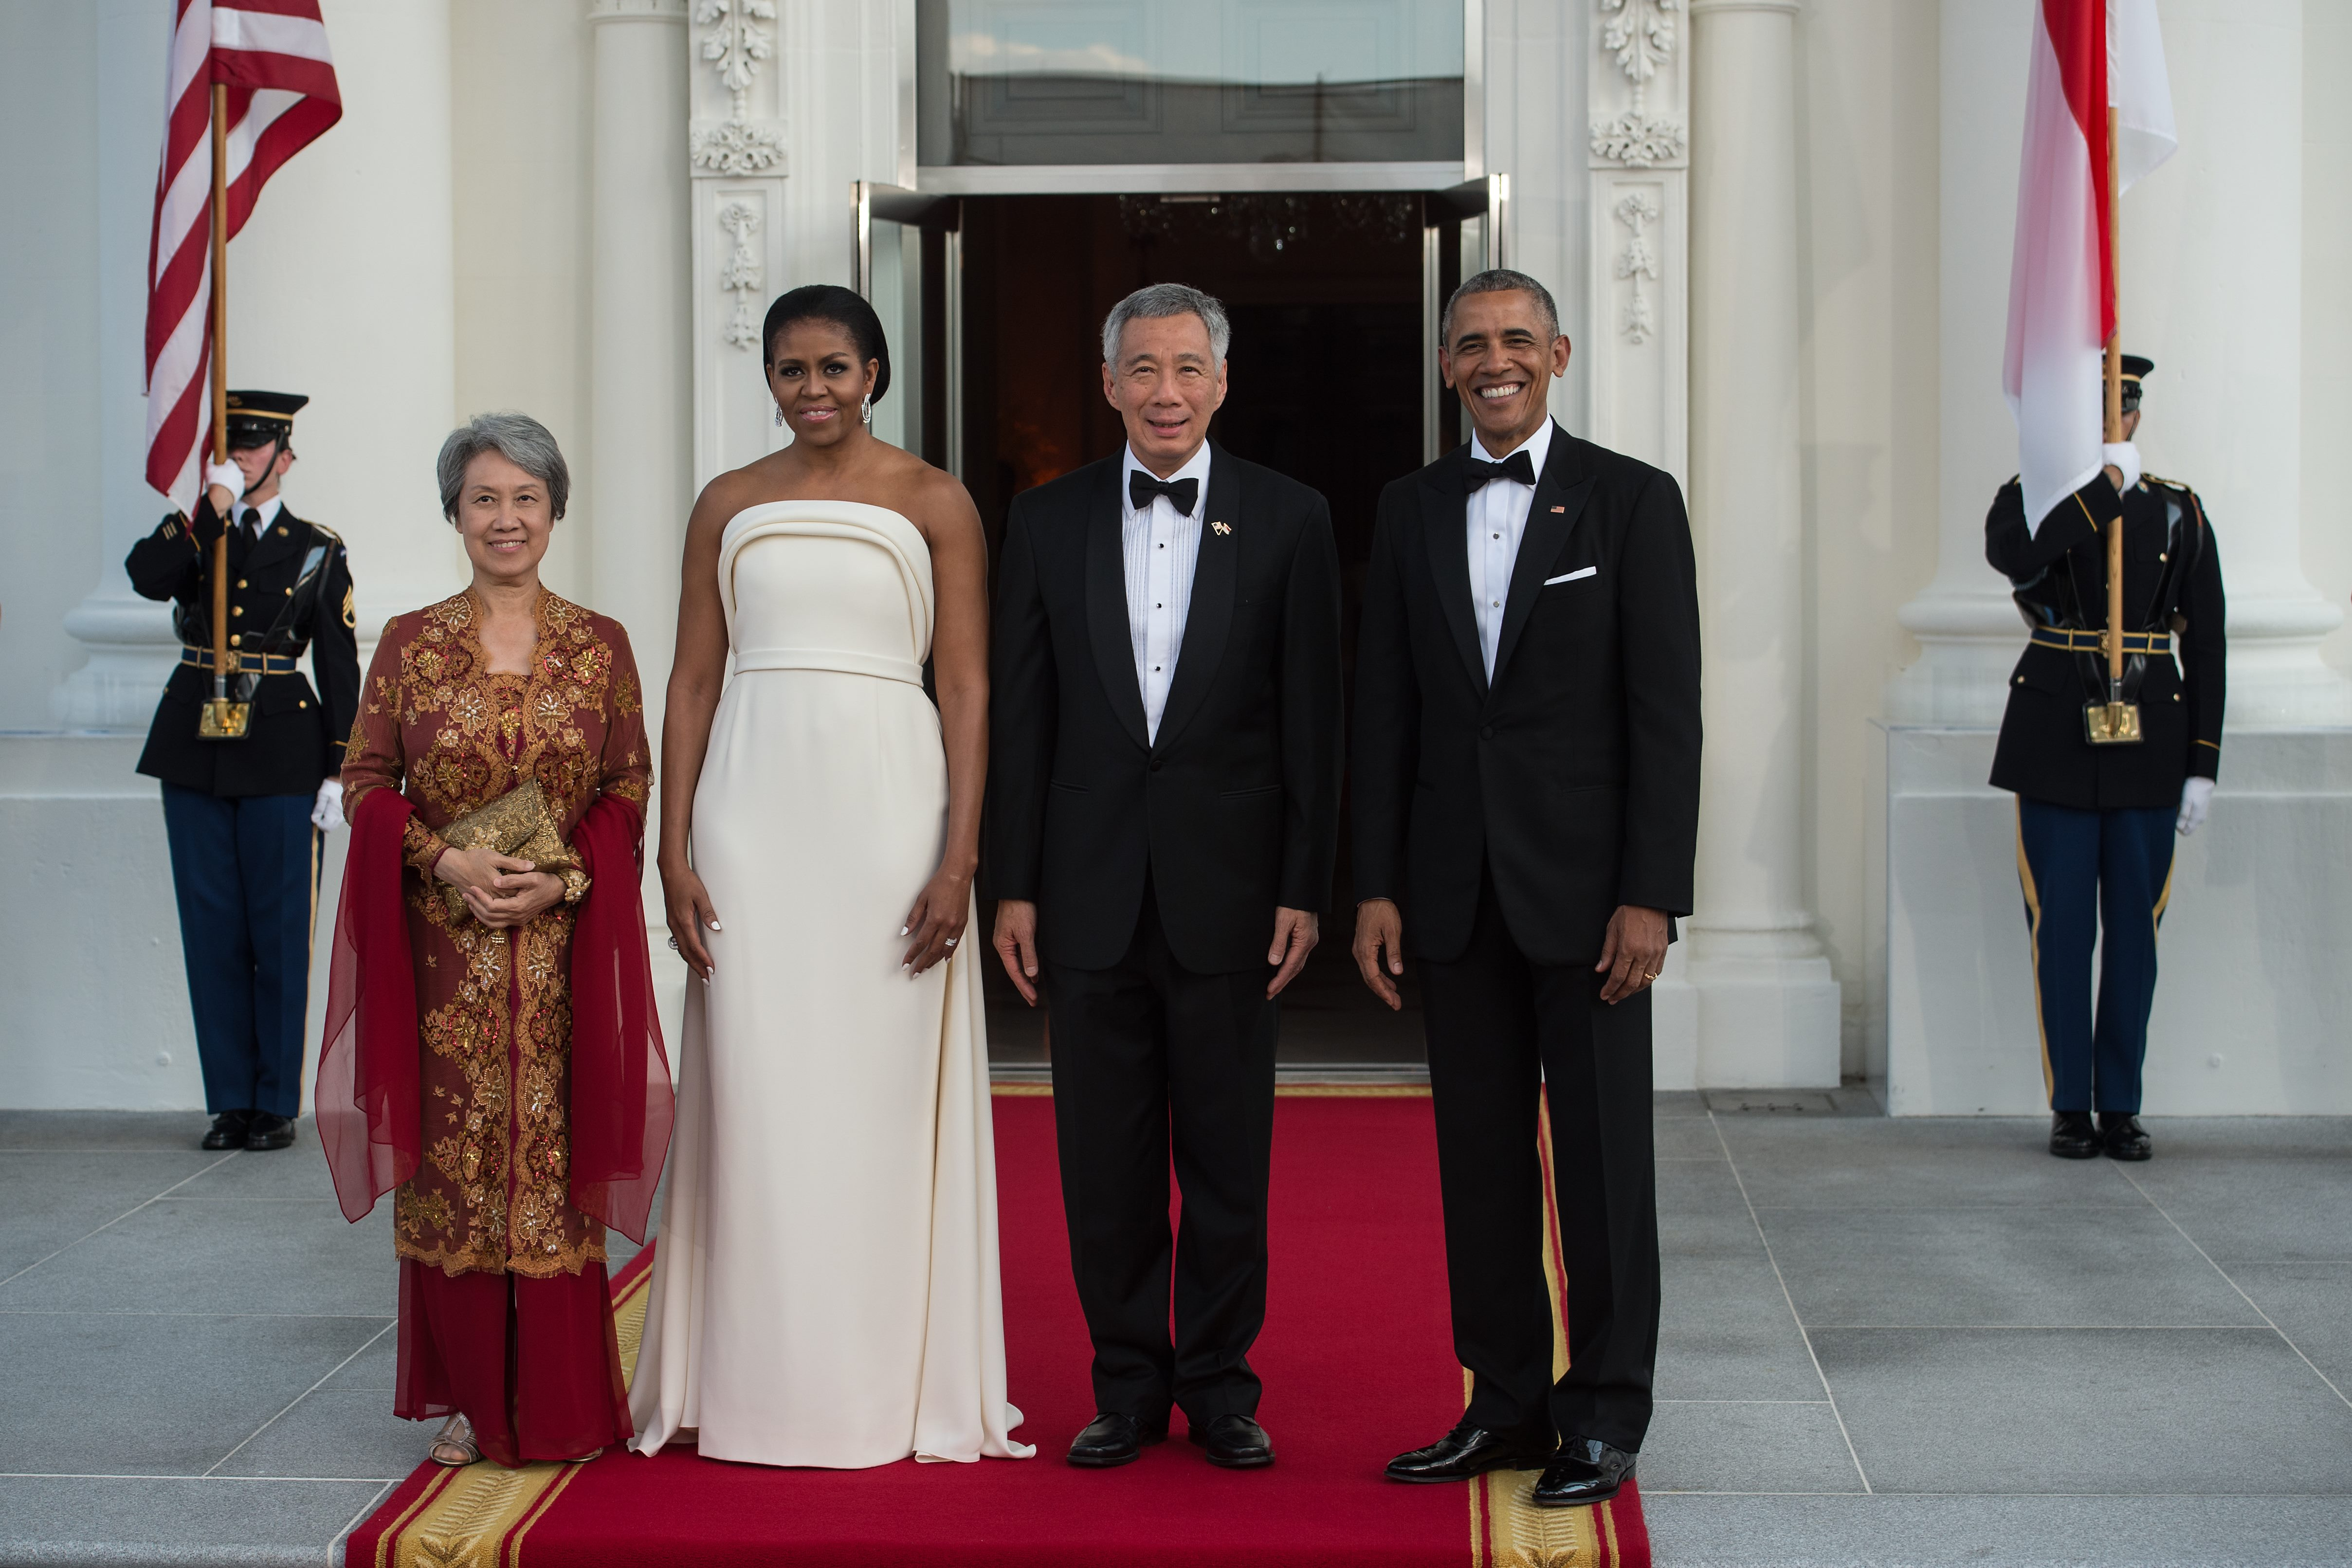 US President Barack Obama (R) and First Lady Michelle Obama (2nd L) greet Singapore's Prime Minister Lee Hsien Loong (2nd R) and his wife Ho Ching for a state dinner at the White House in Washington, DC, on August 2, 2016. / AFP / NICHOLAS KAMM        (Photo credit should read NICHOLAS KAMM/AFP/Getty Images)